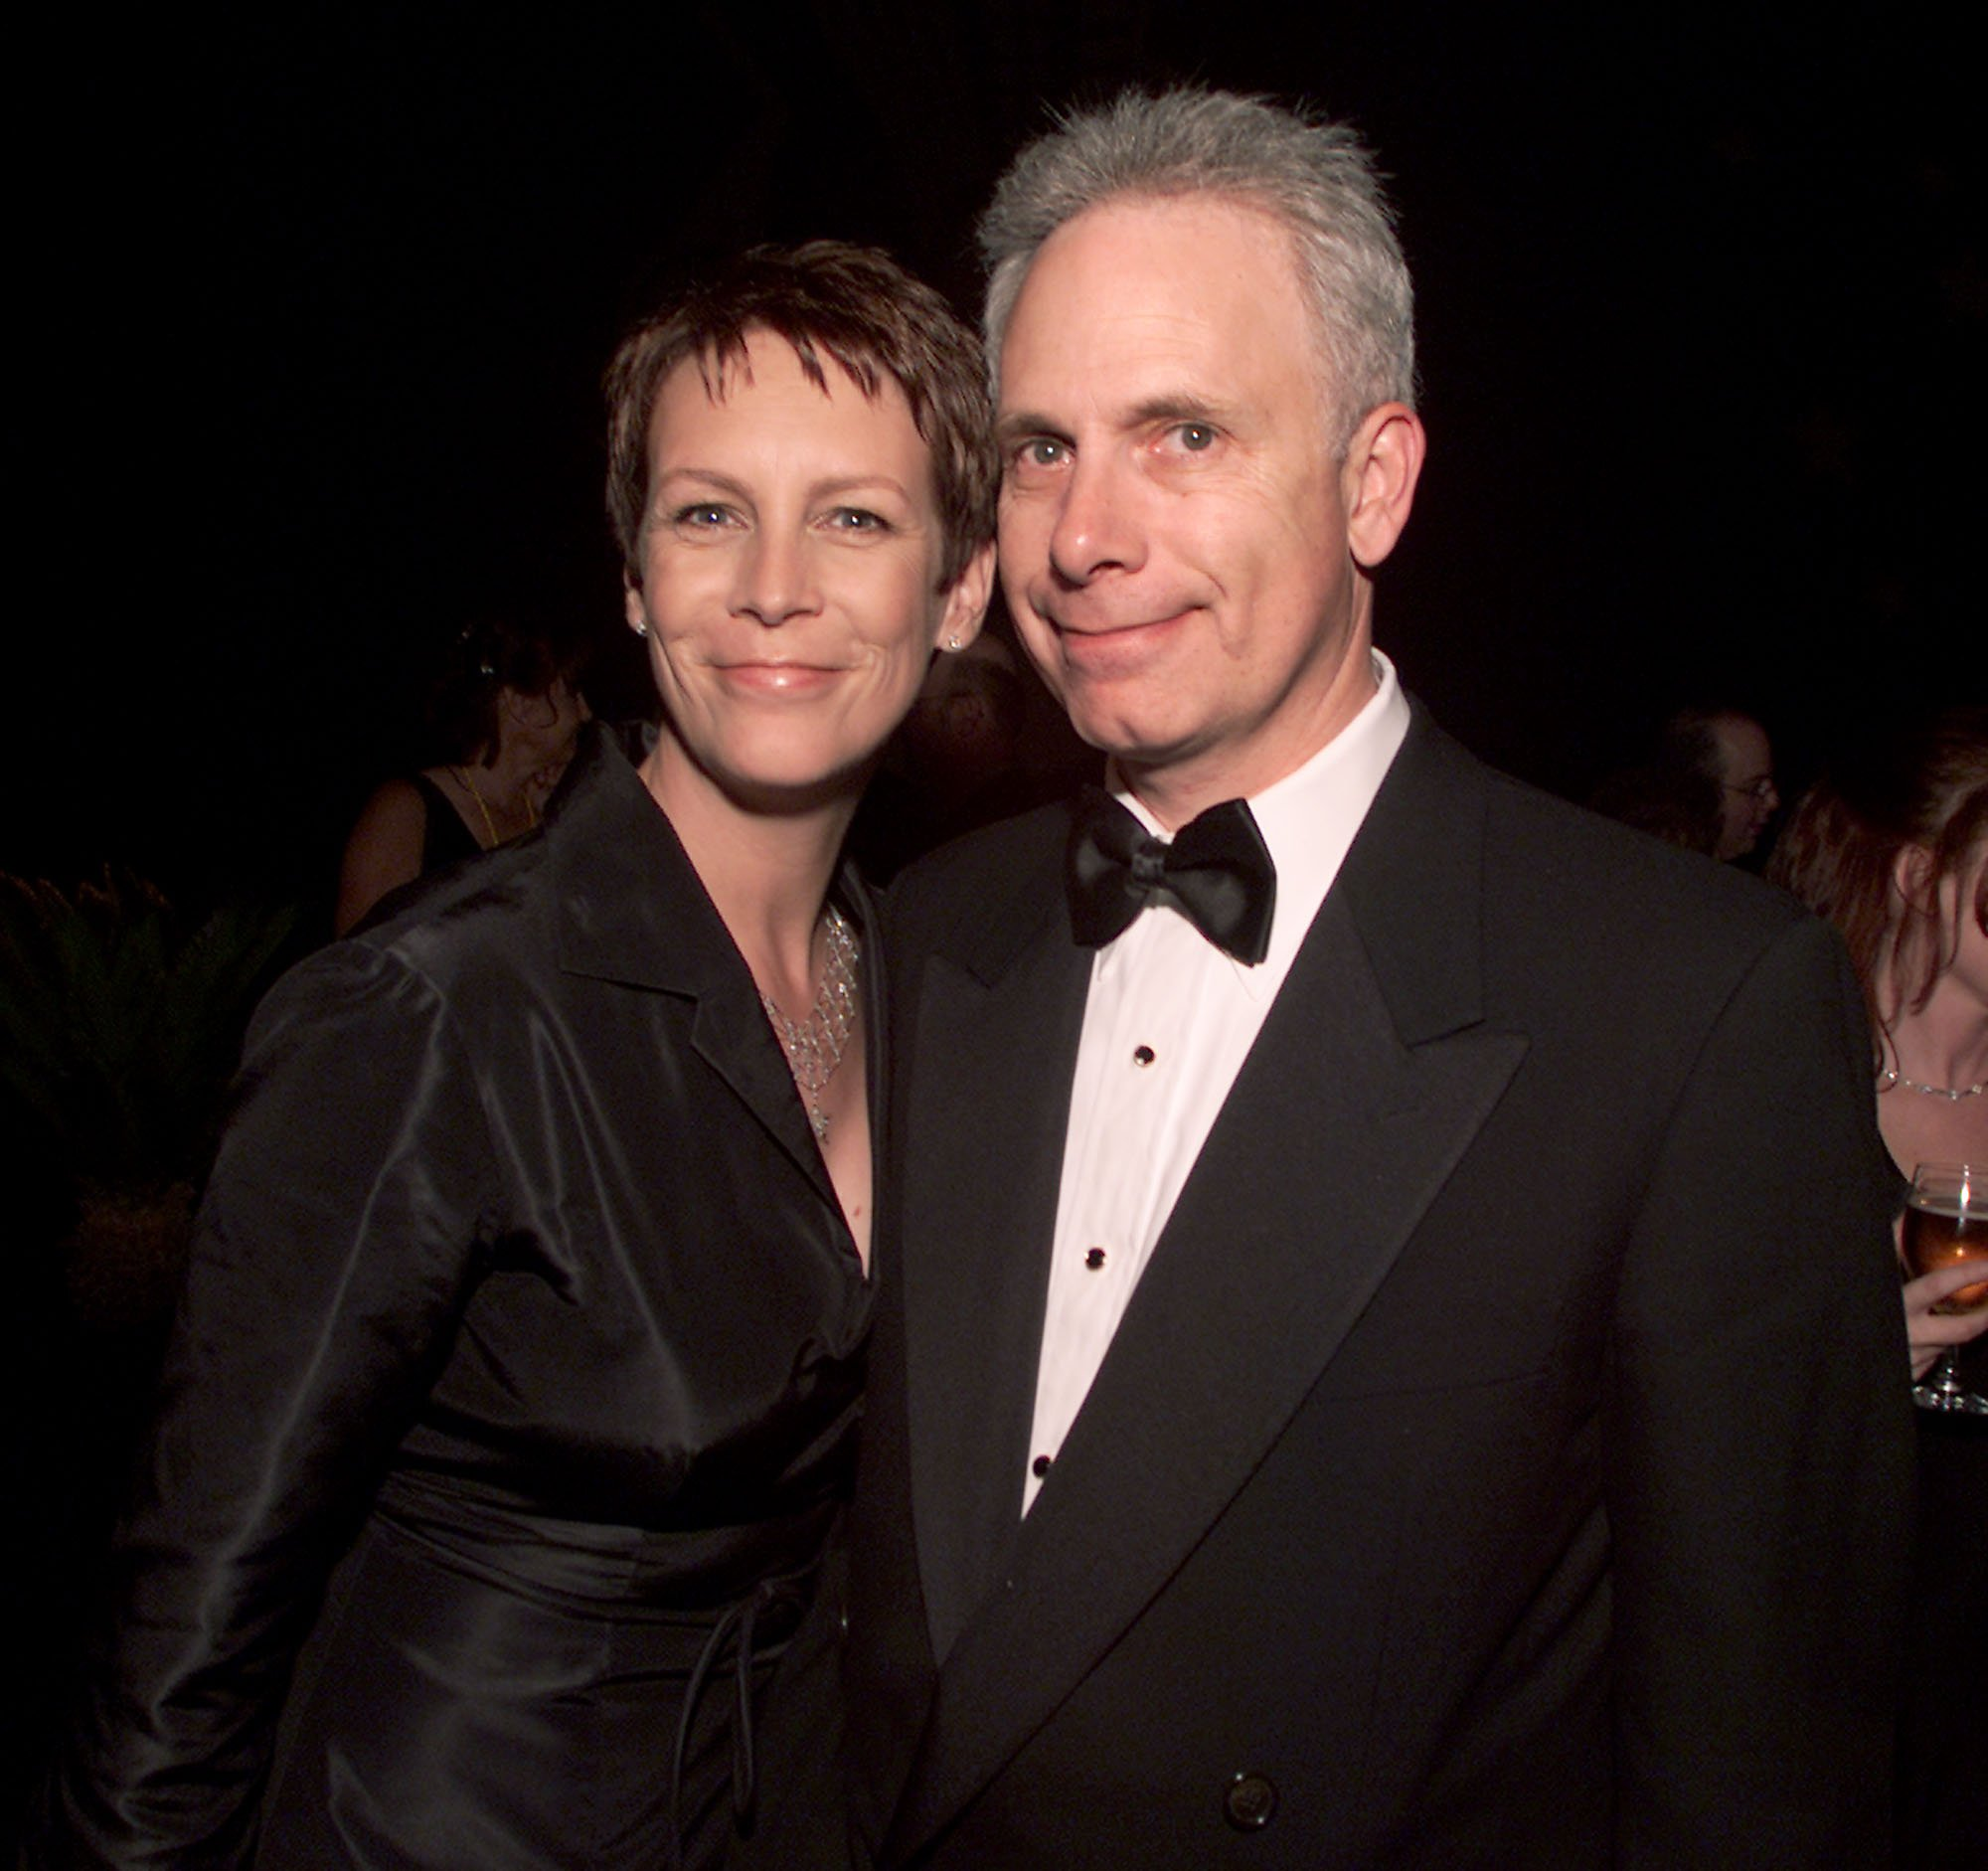 Jamie Lee Curtis and husband Christopher Guest at Comedy Central's post-party after the 15th Annual American Comedy Awards, Los Angeles, California April, 2001 | Photo: GettyImages